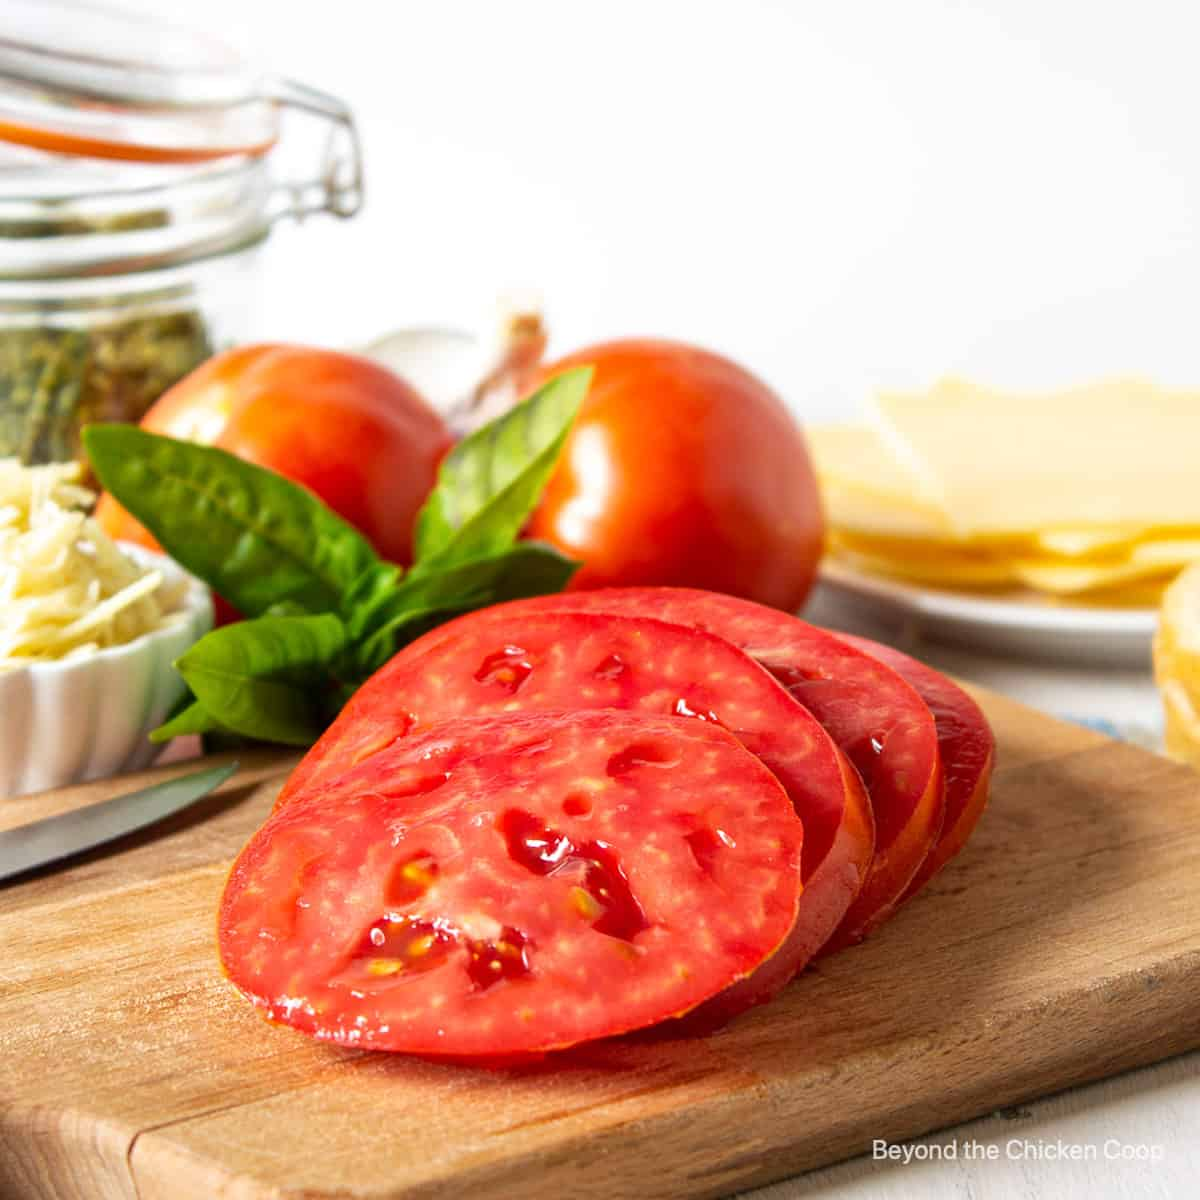 Sliced tomatoes on a wooden board.